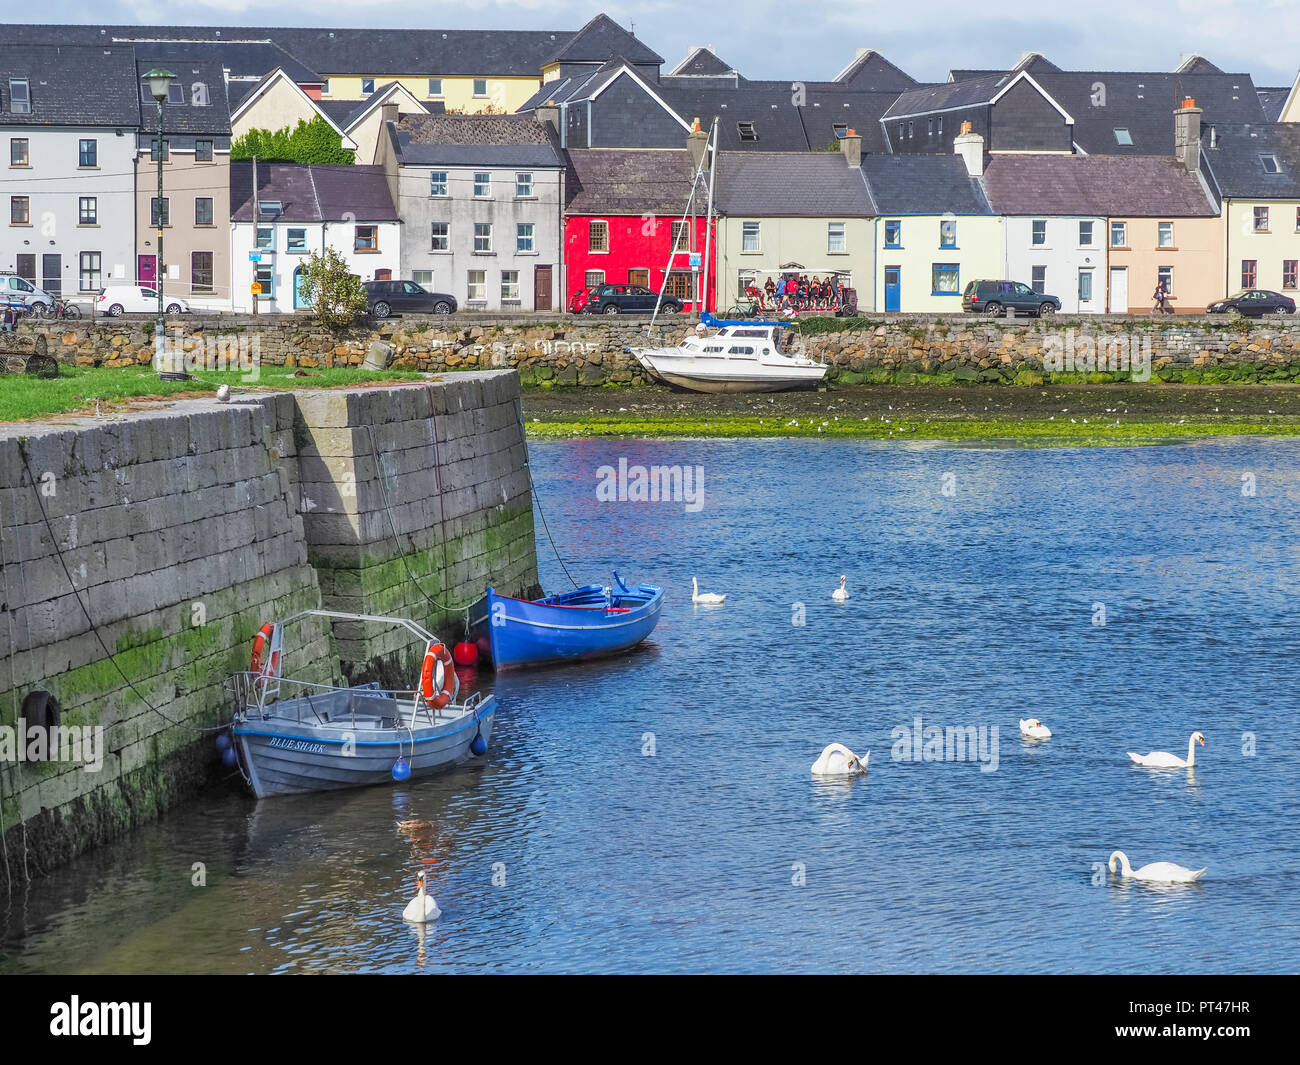 GALWAY, IRELAND - AUGUST 3, 2018: A view from the Claddagh Basin, across the River Corrib, towards the The Long Walk in Galway, Ireland. Stock Photo